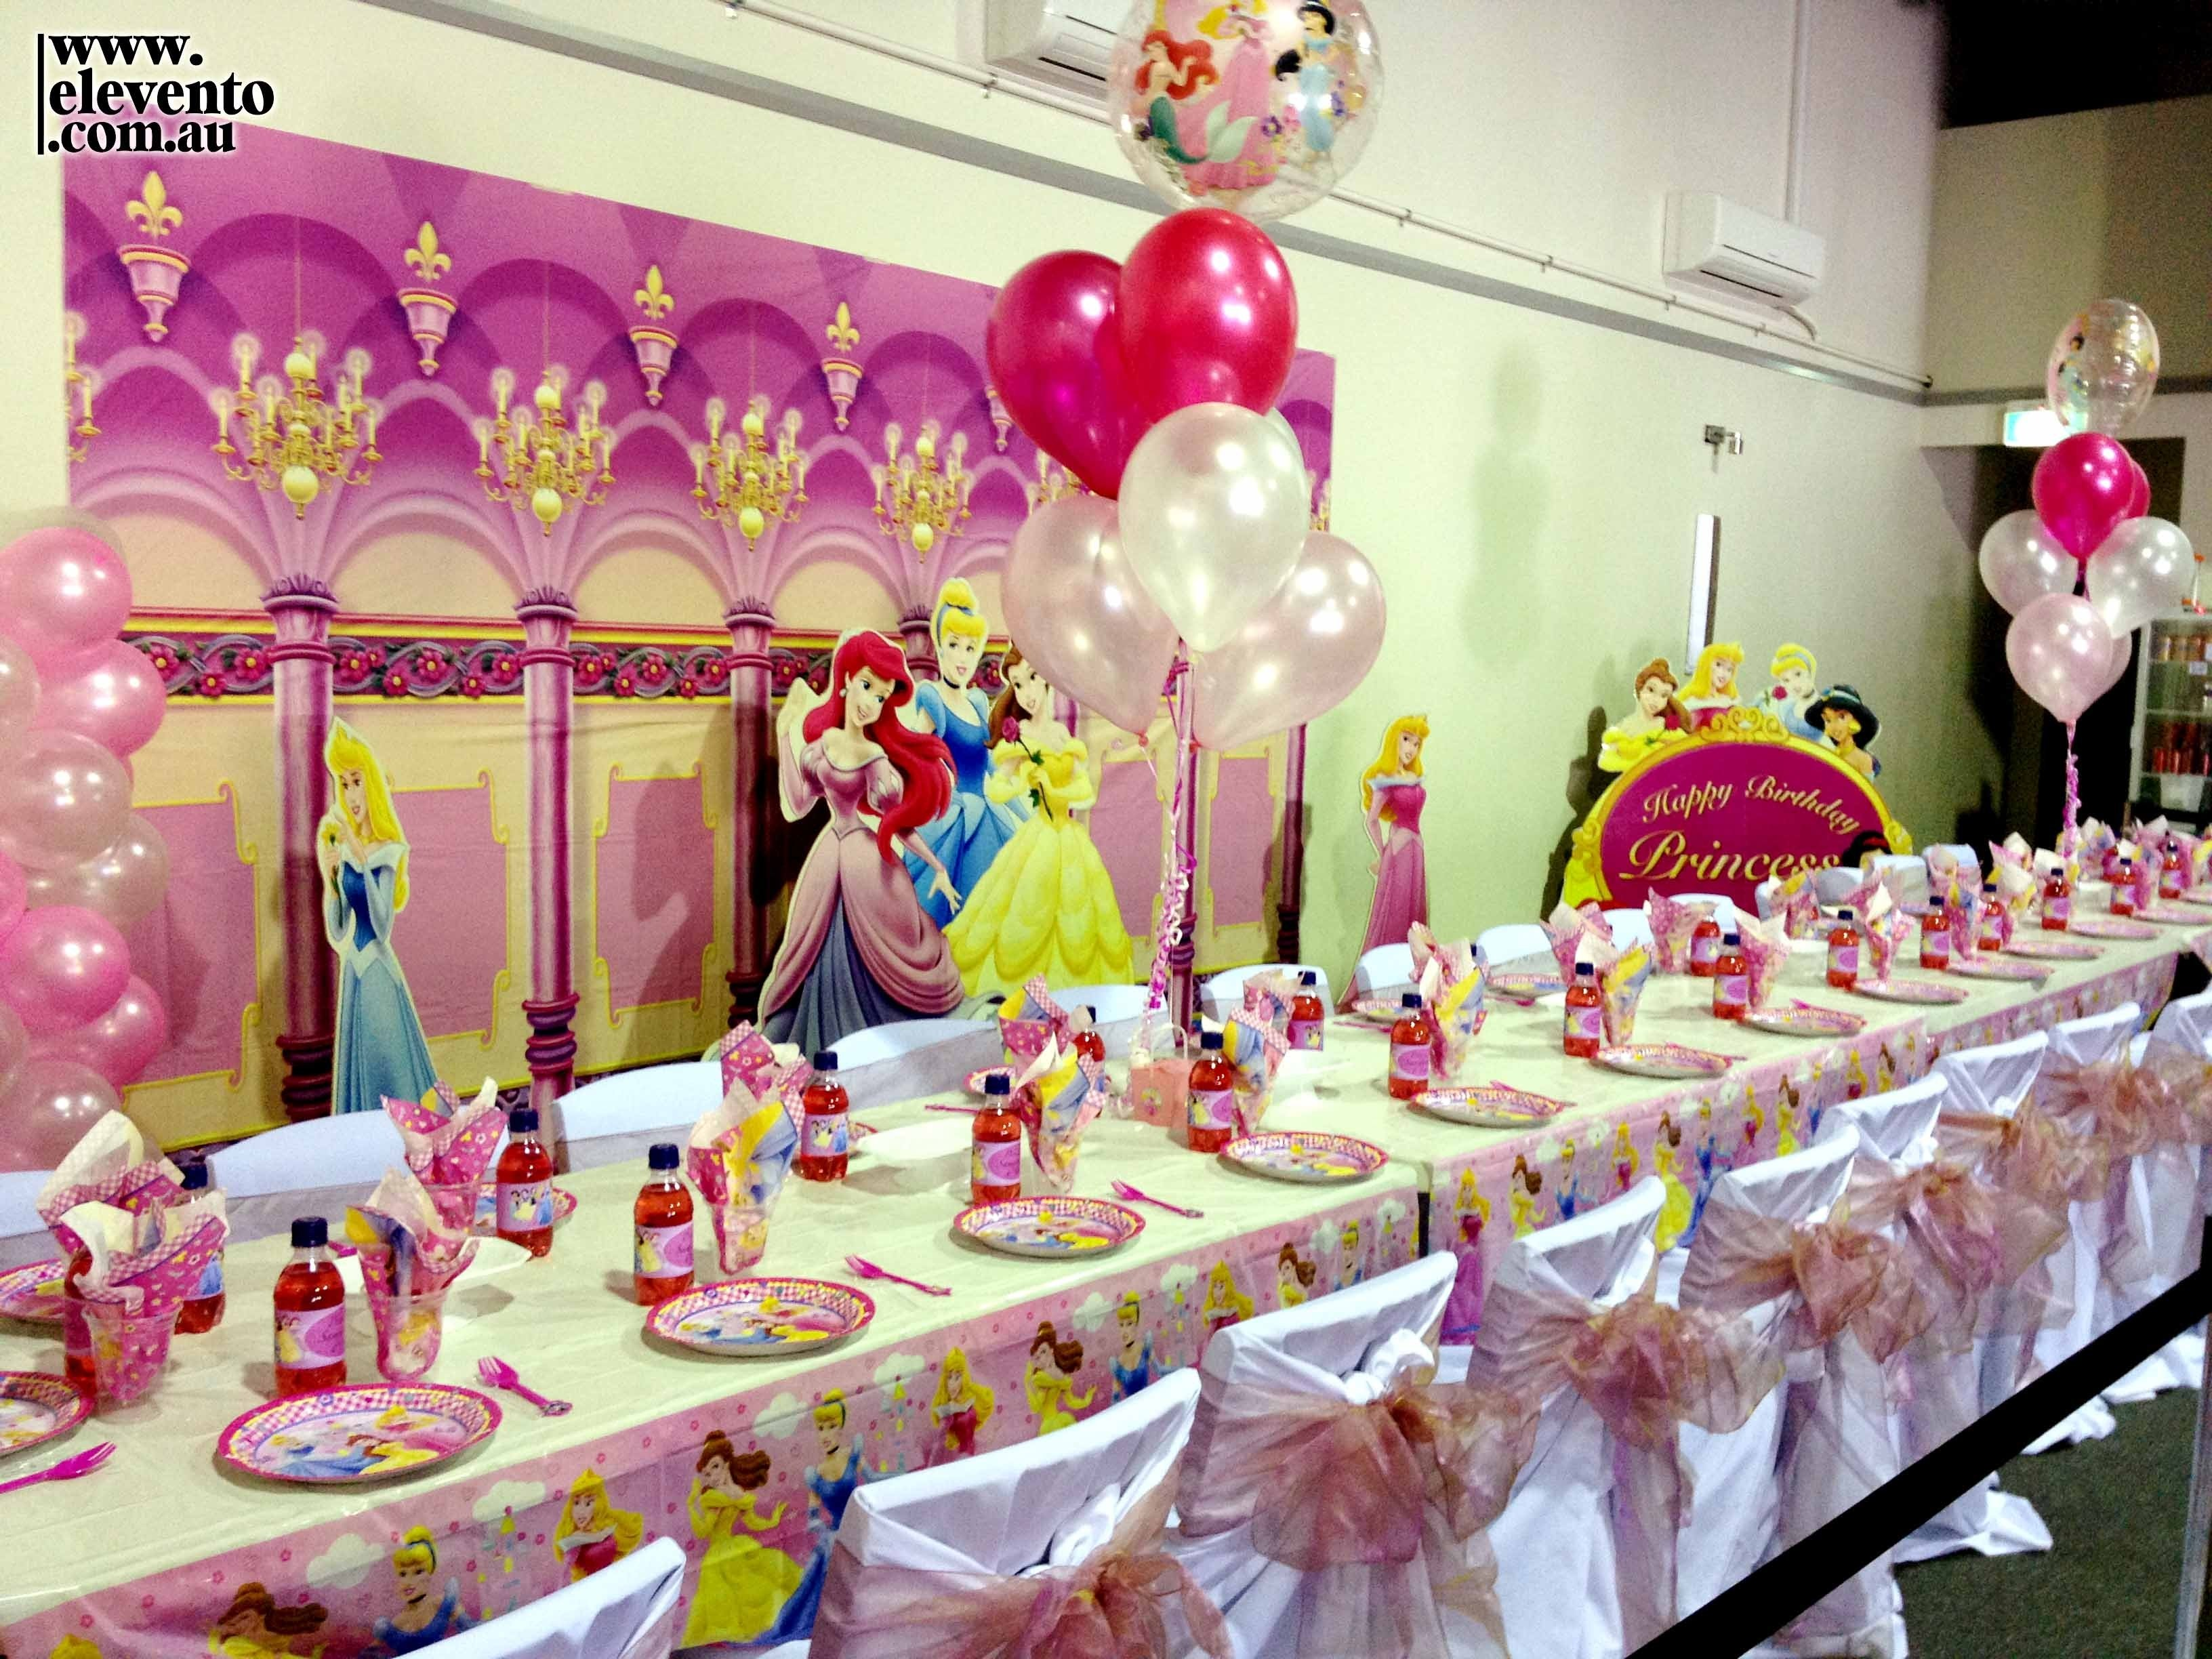 10 Beautiful Disney Princess Birthday Party Ideas a little girls dream birthday we set up this disney princess 2020